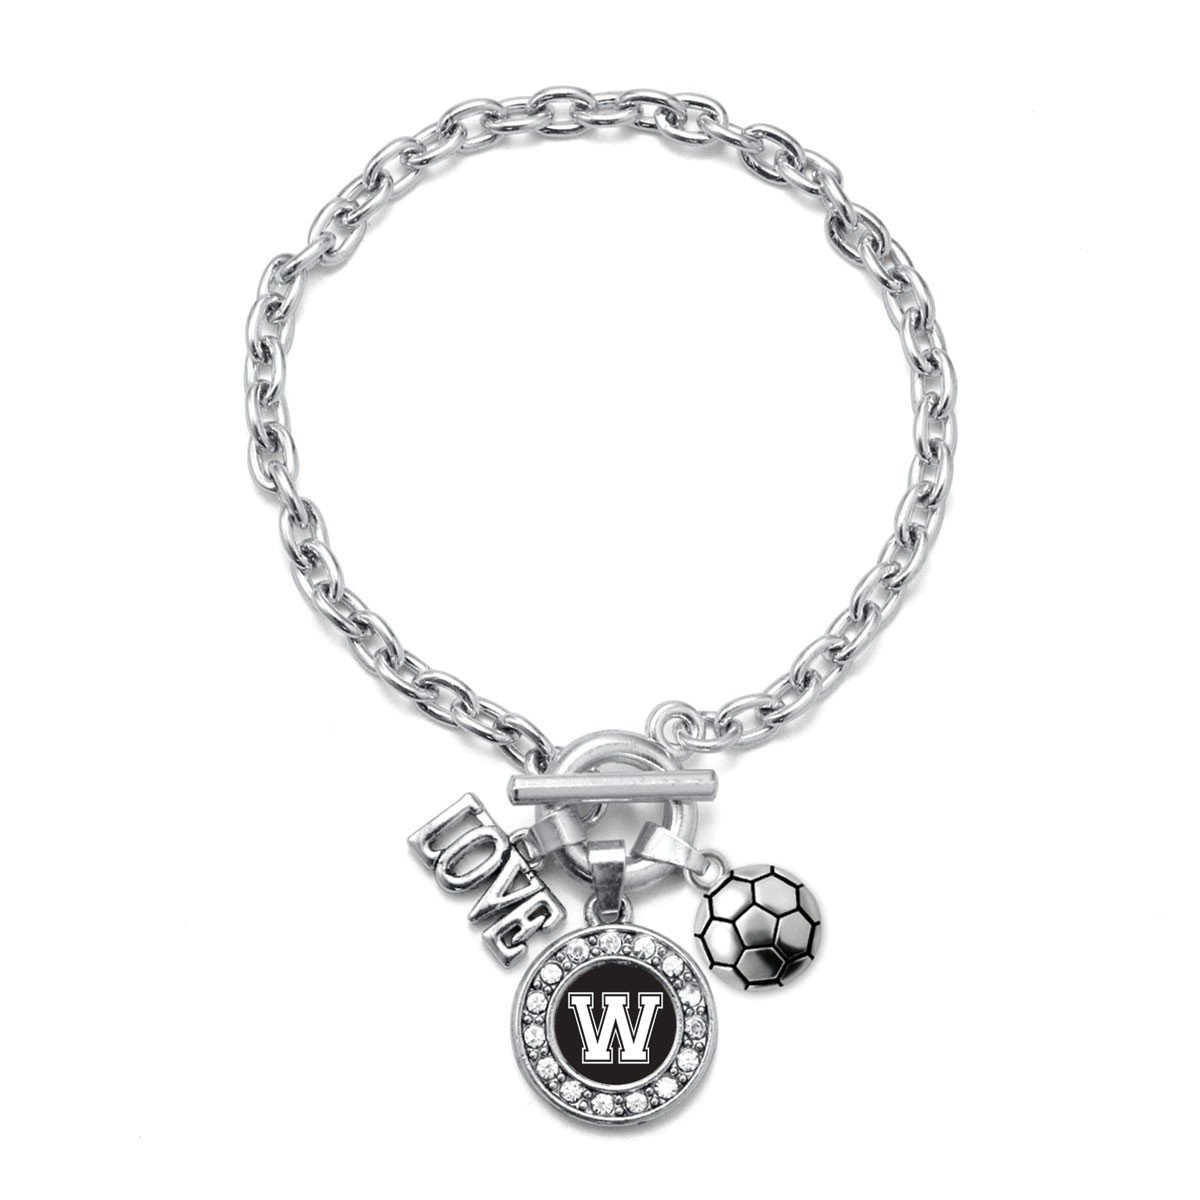 Inspired Silver My Sports Initial Circle Charm Soccer Toggle Charm Bracelet Letter W